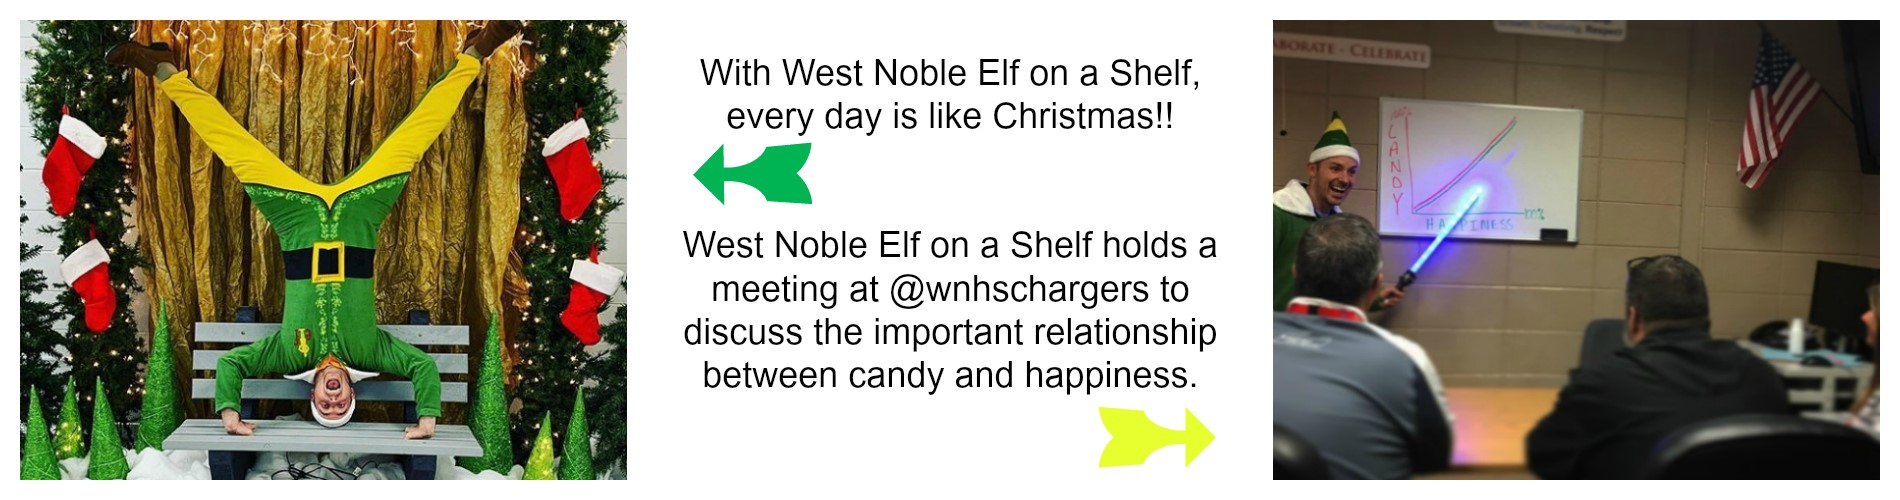 West Noble Elf on a Shelf.